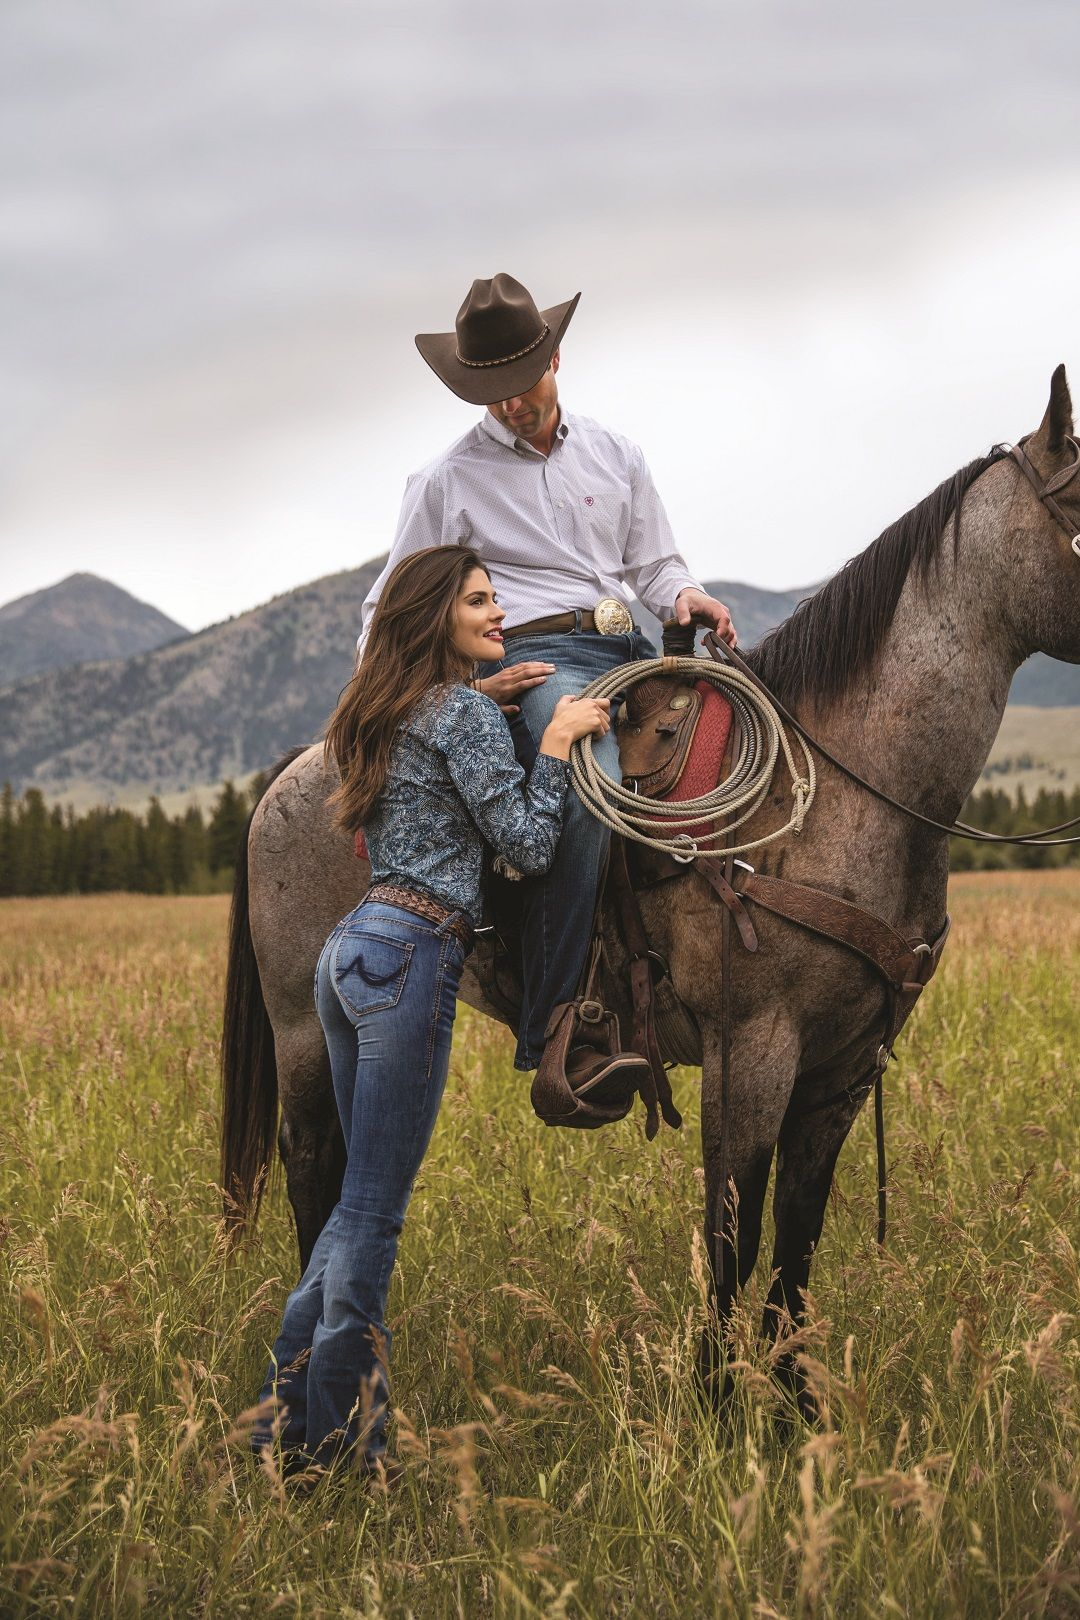 Horse and cowboy approved women's western apparel. #cowboysandcowgirls